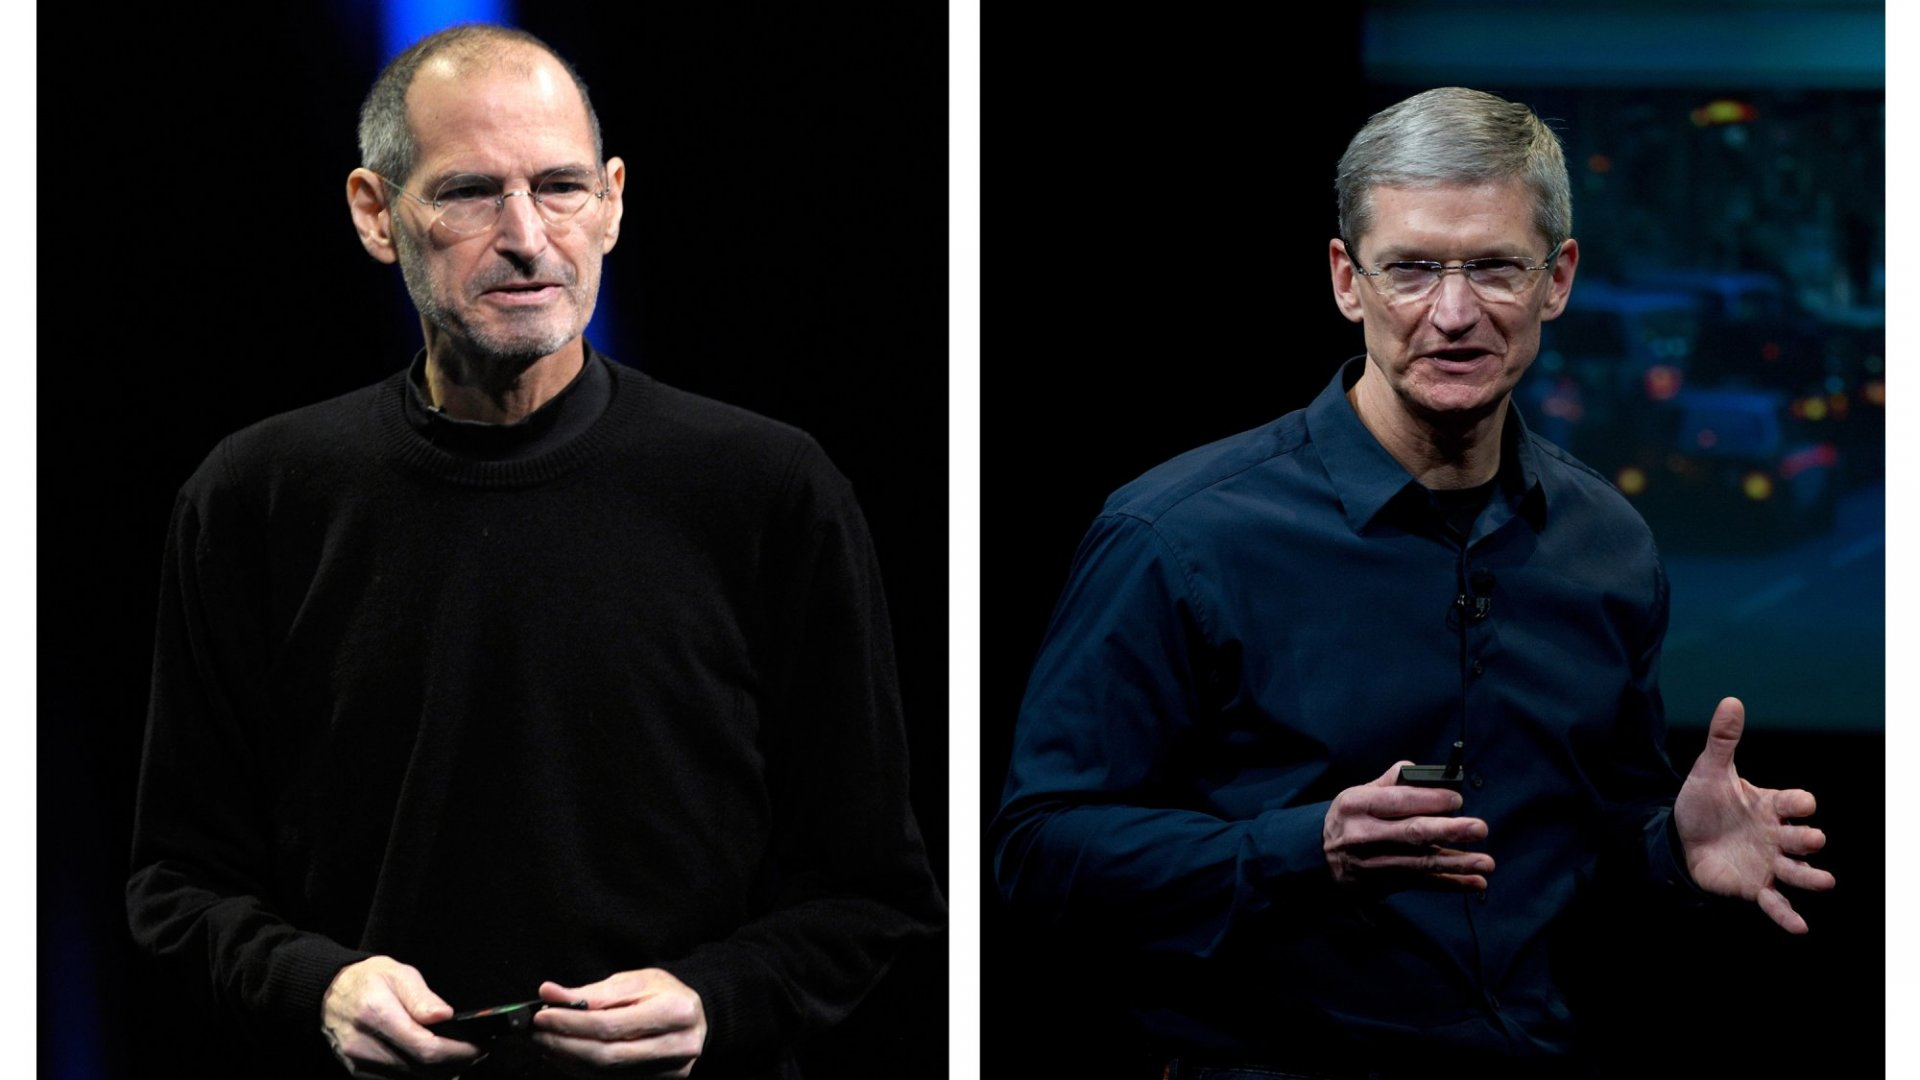 Steve Jobs and Tim Cook.